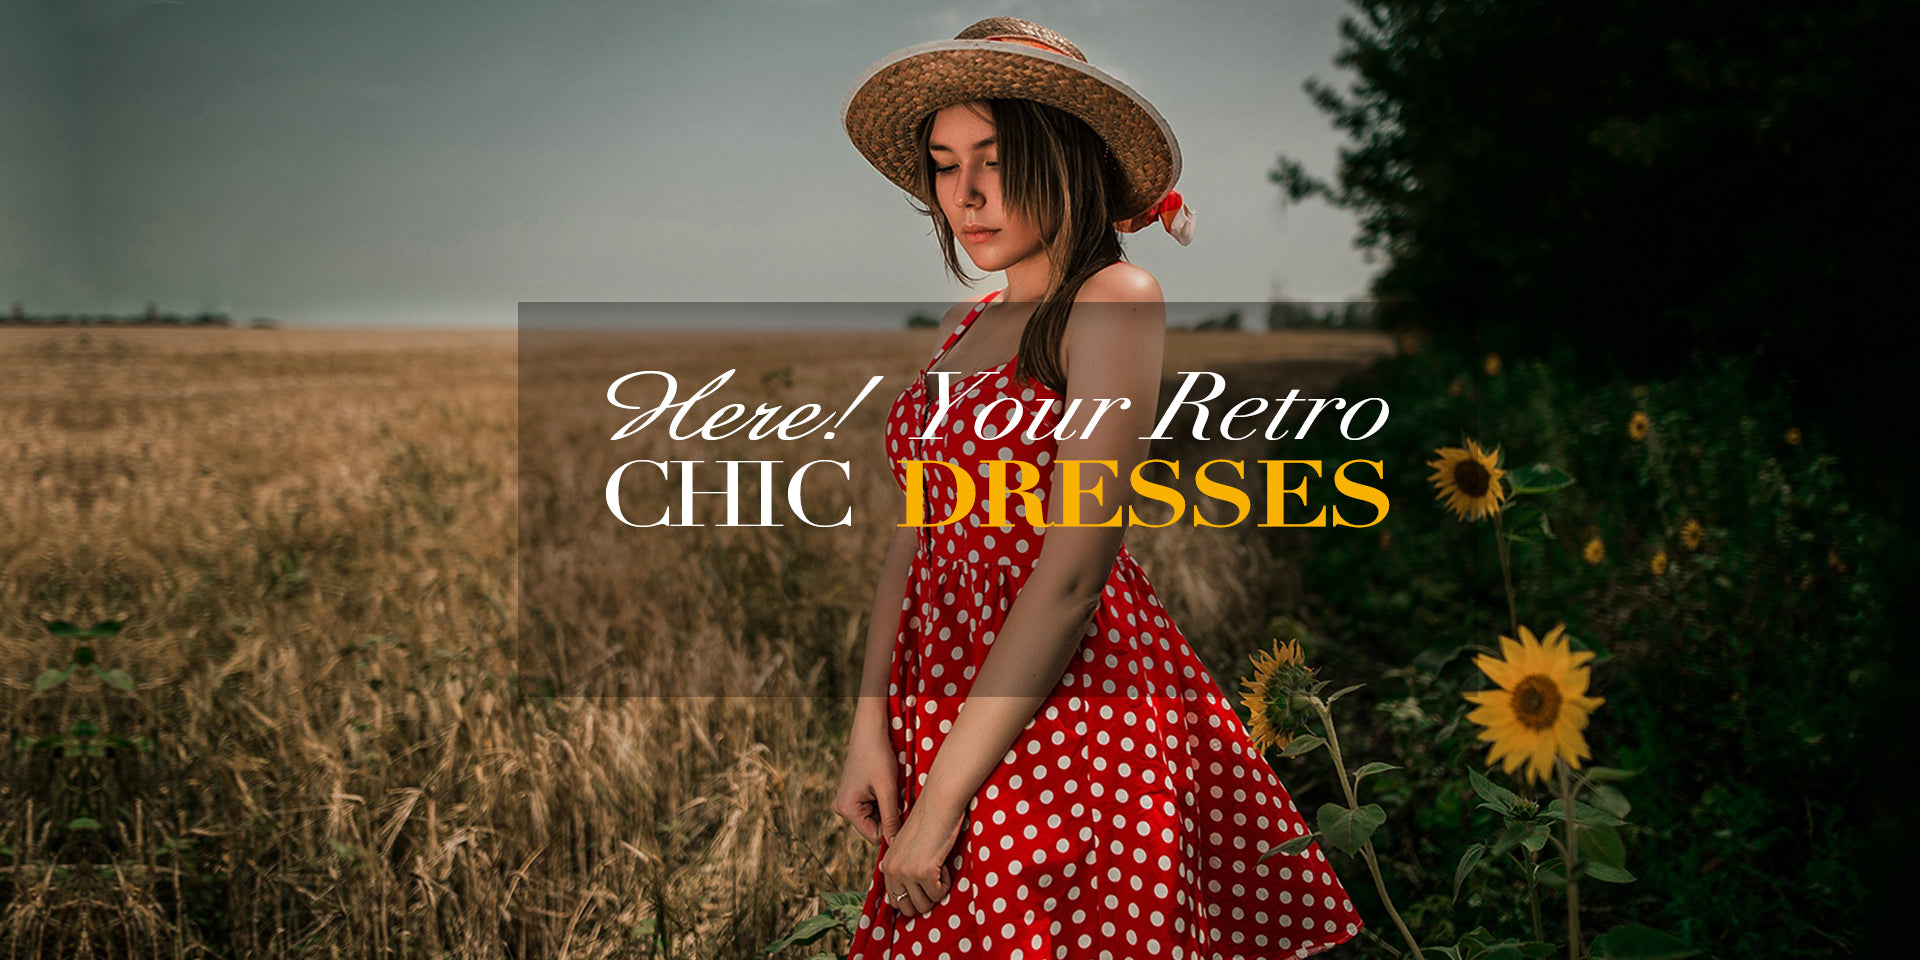 Retro Stage Chic Vintage Dresses And Accessories